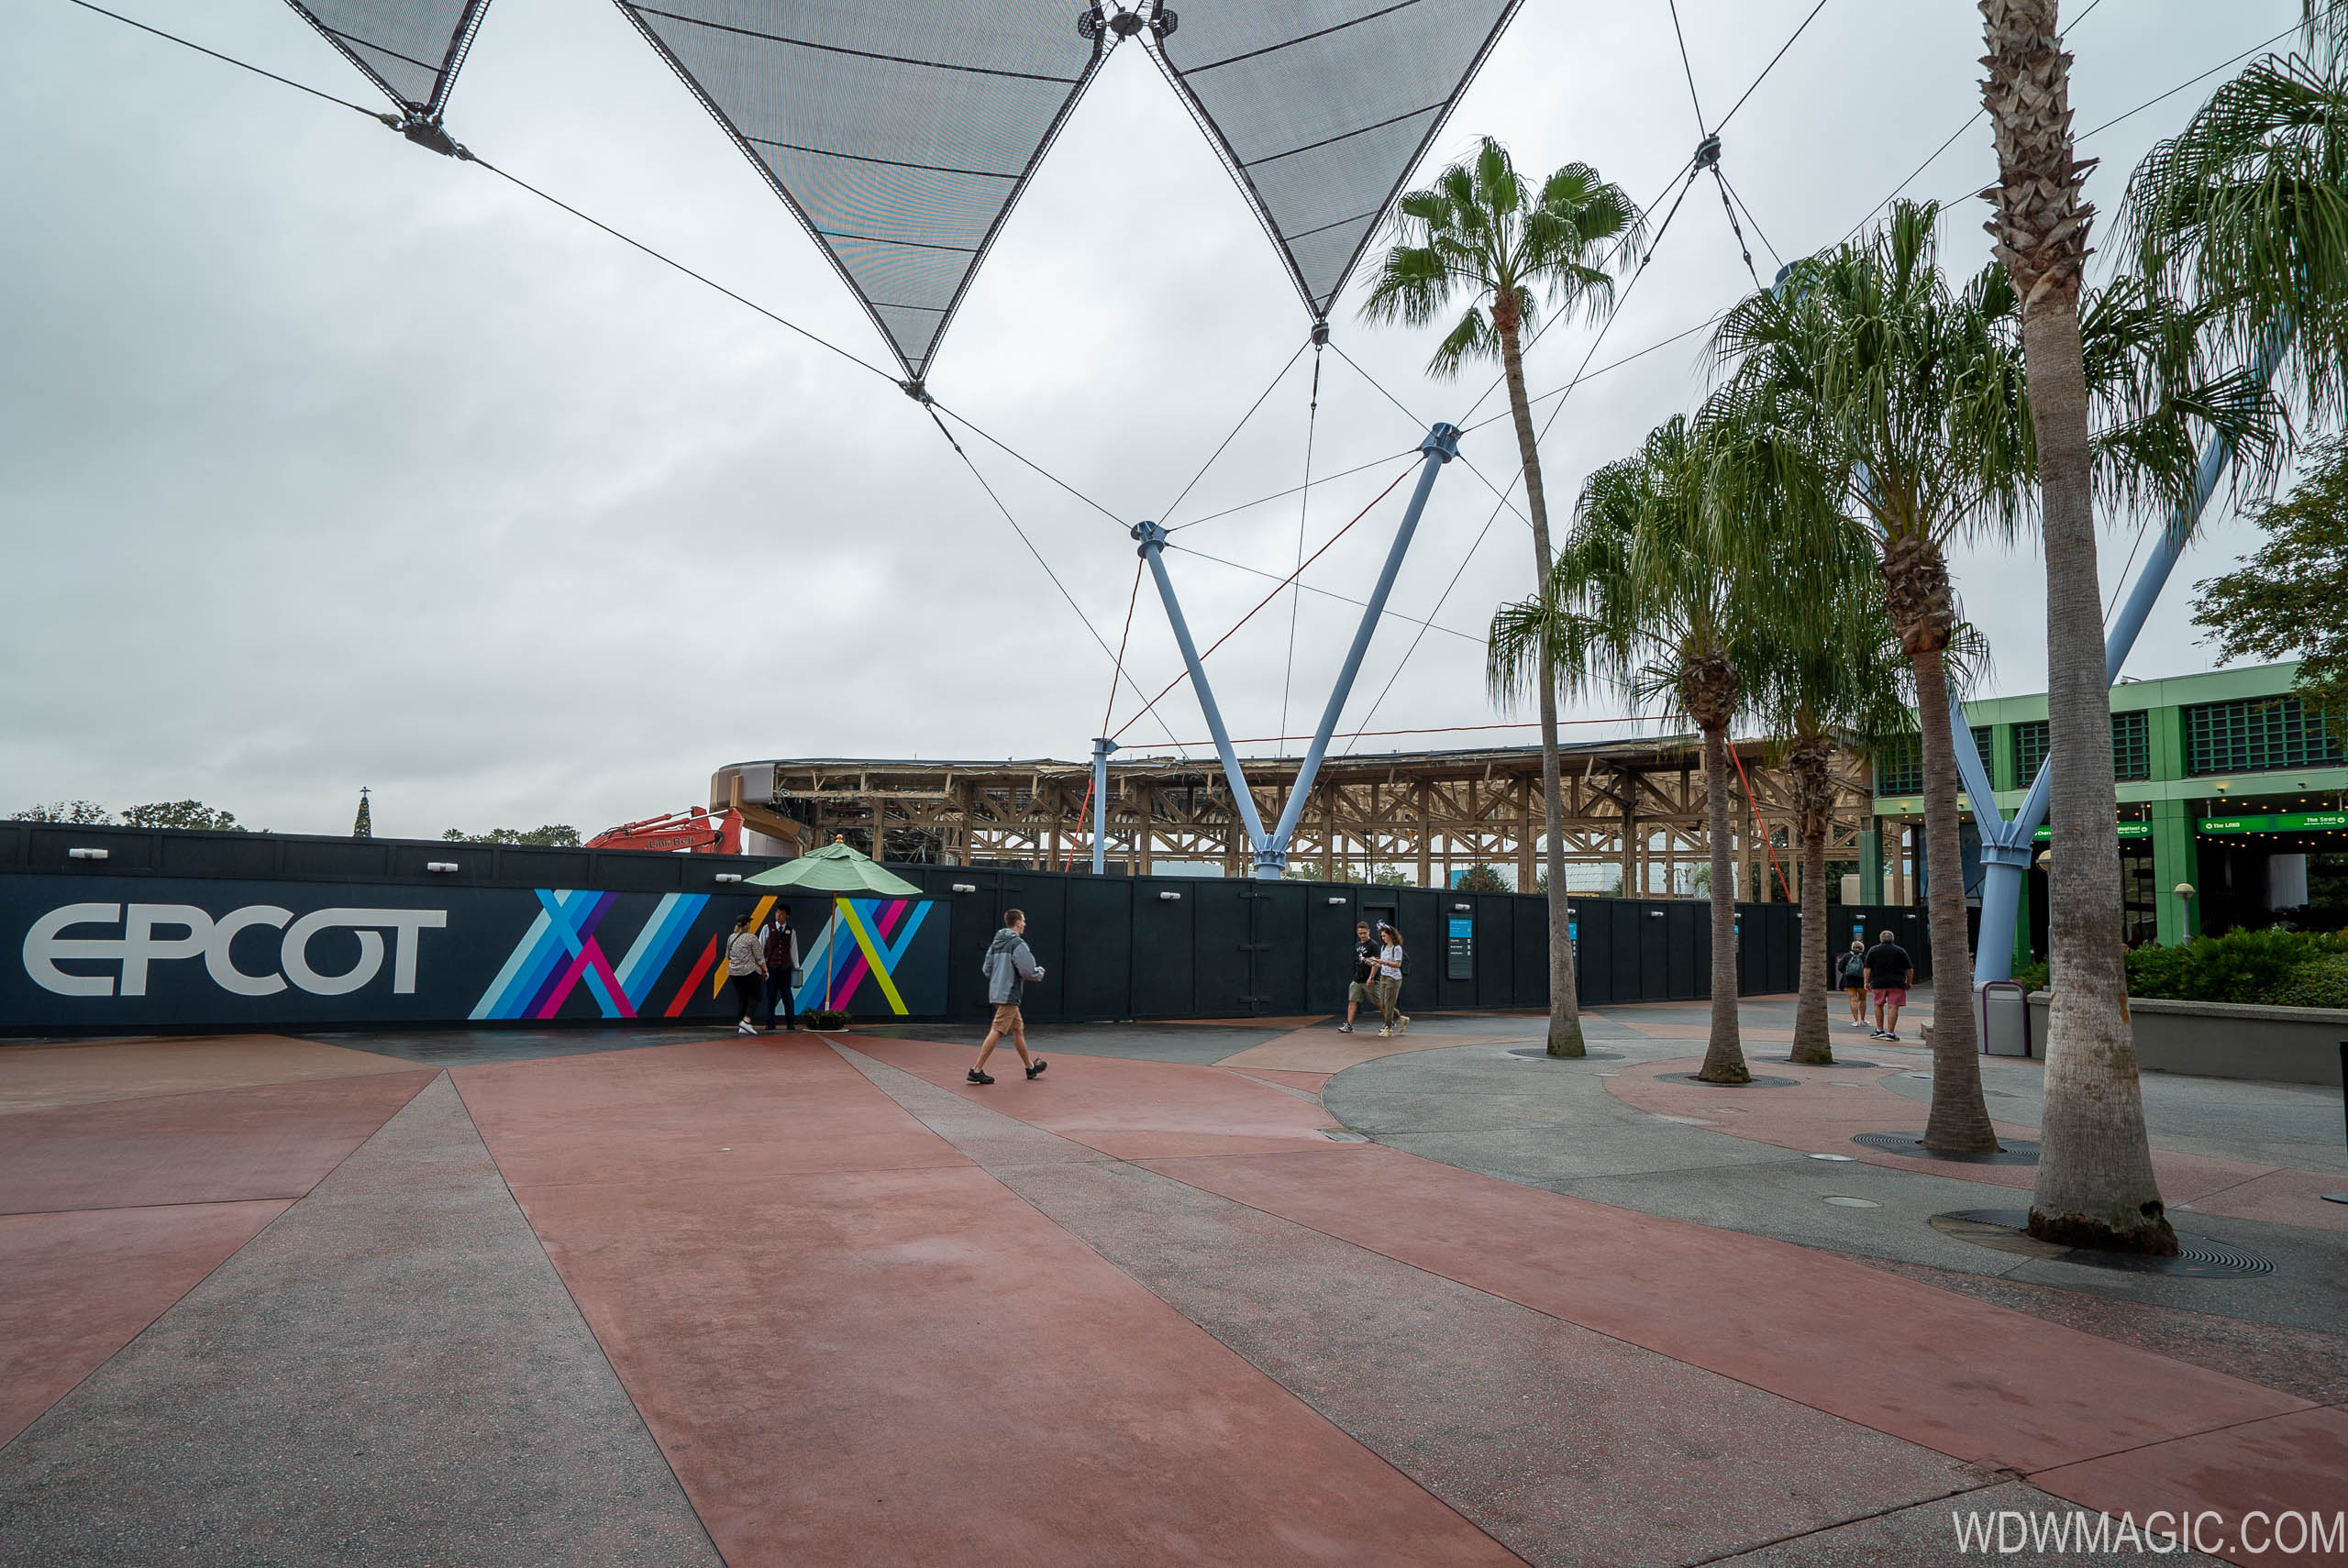 Epcot Future World West Demolition and Construction Walls - December 12 2019